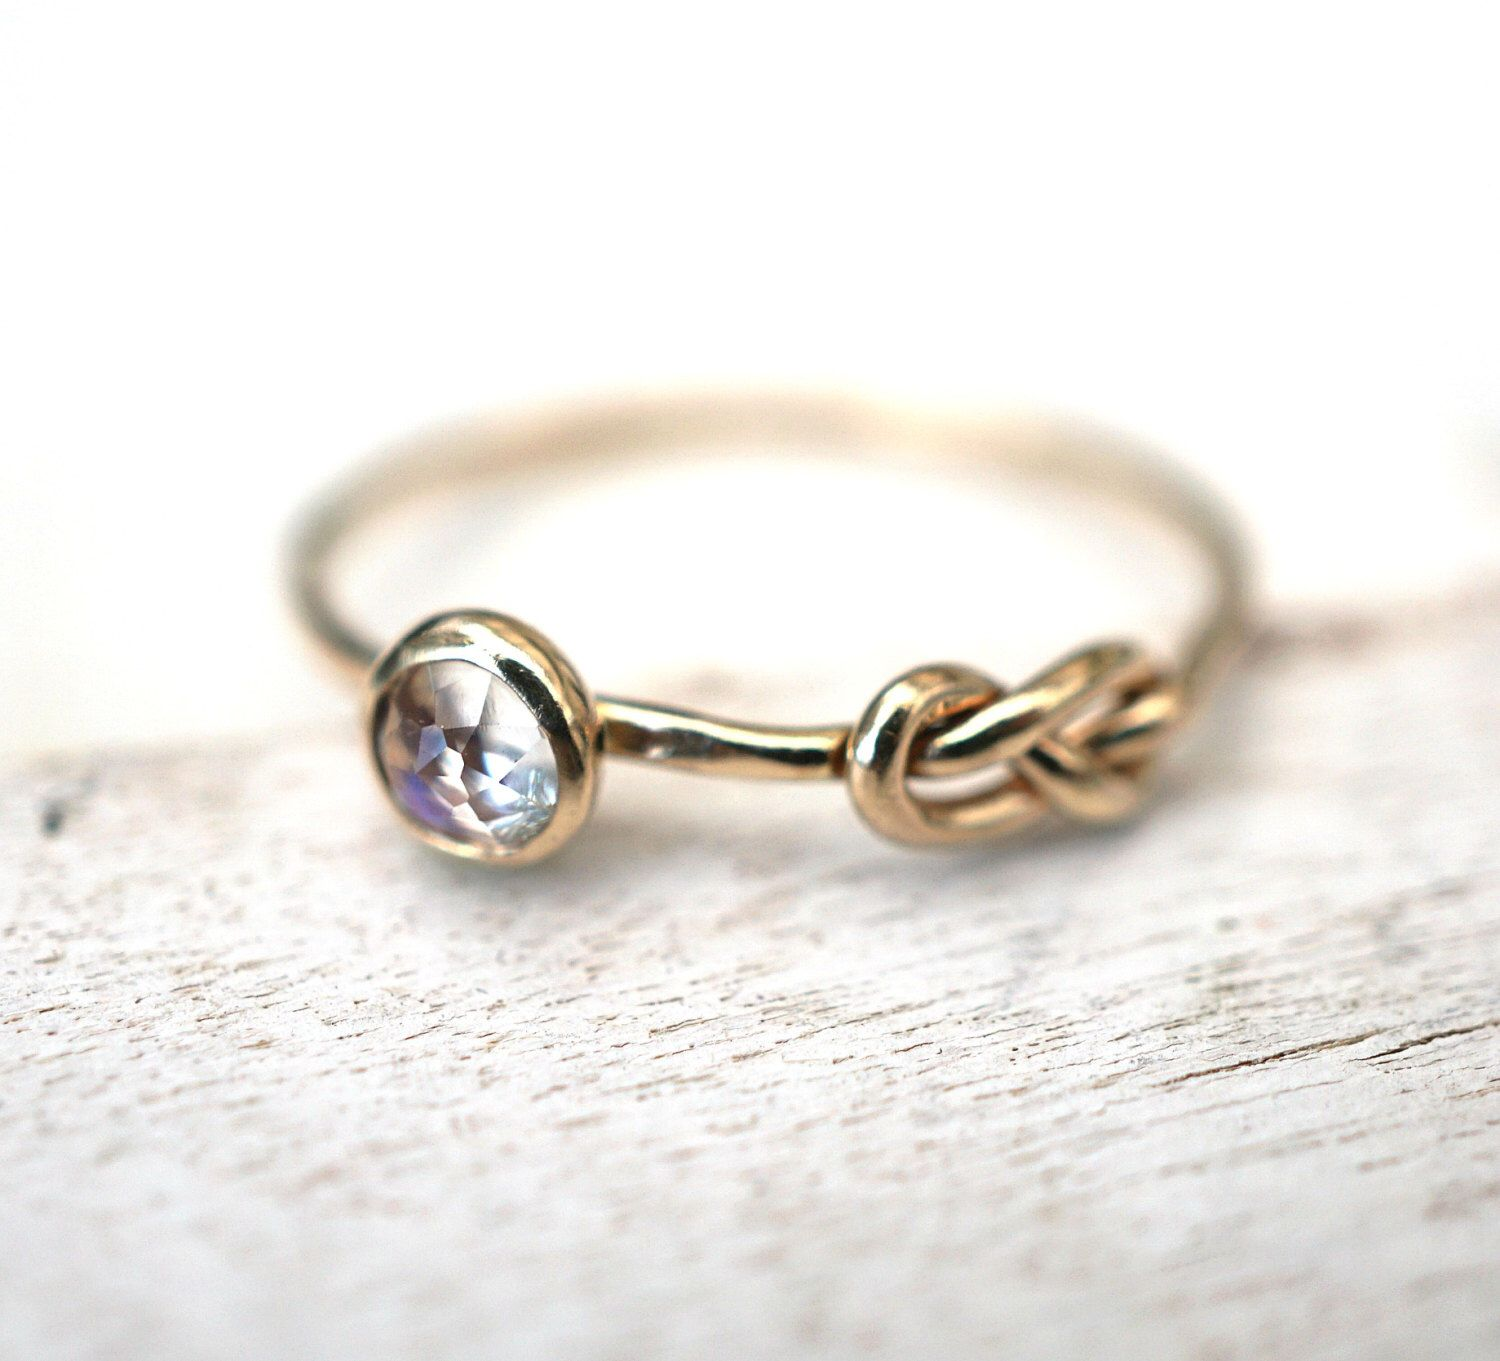 the as present blog push rings eternity ring presents perfect